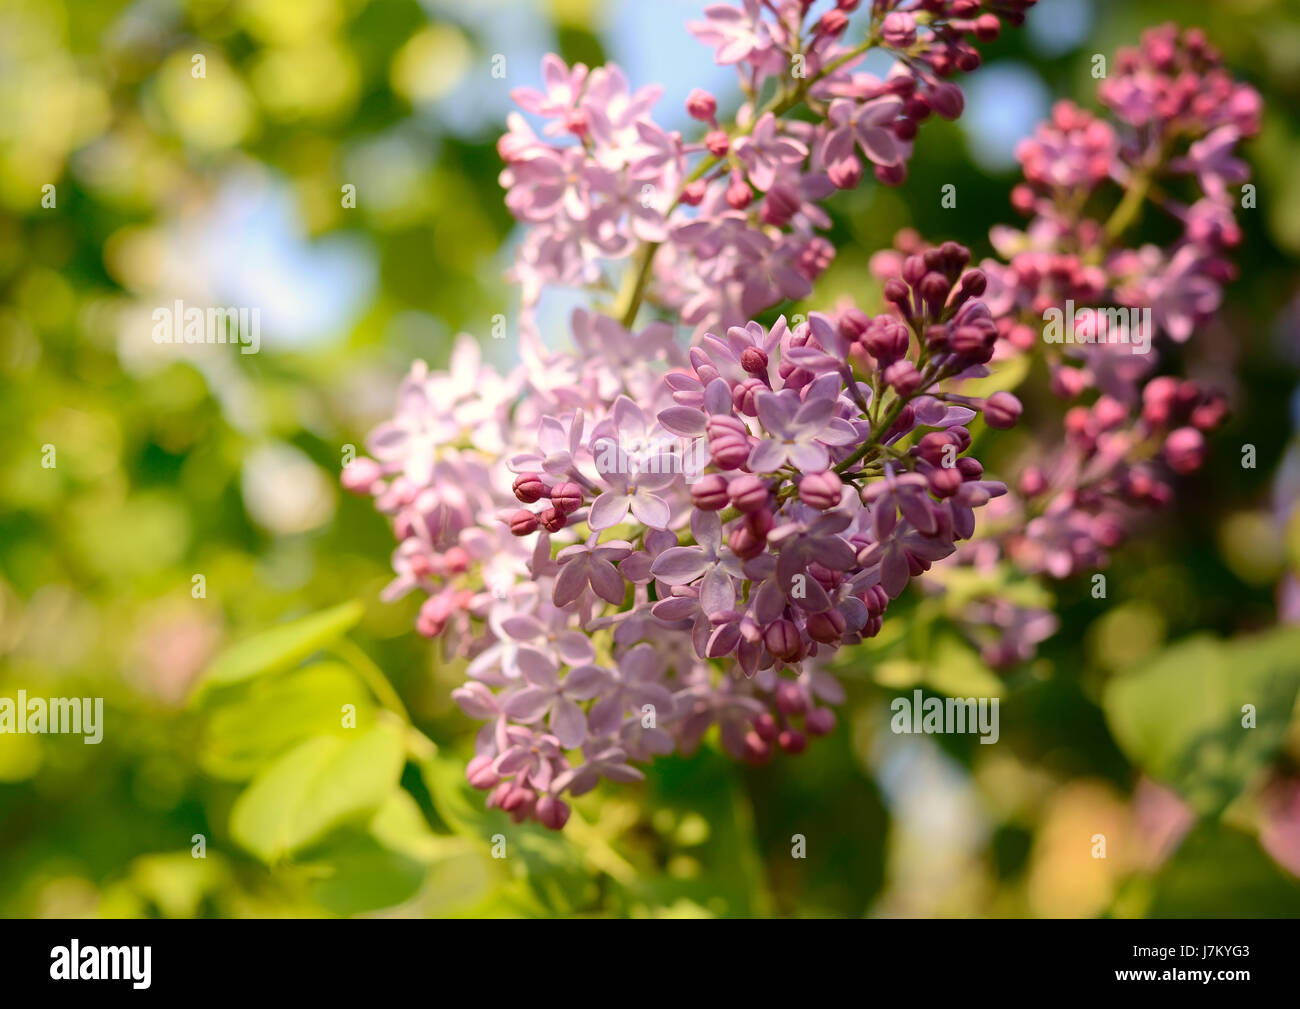 Lilac flower under the blue sky. Spring flowers background - Stock Image